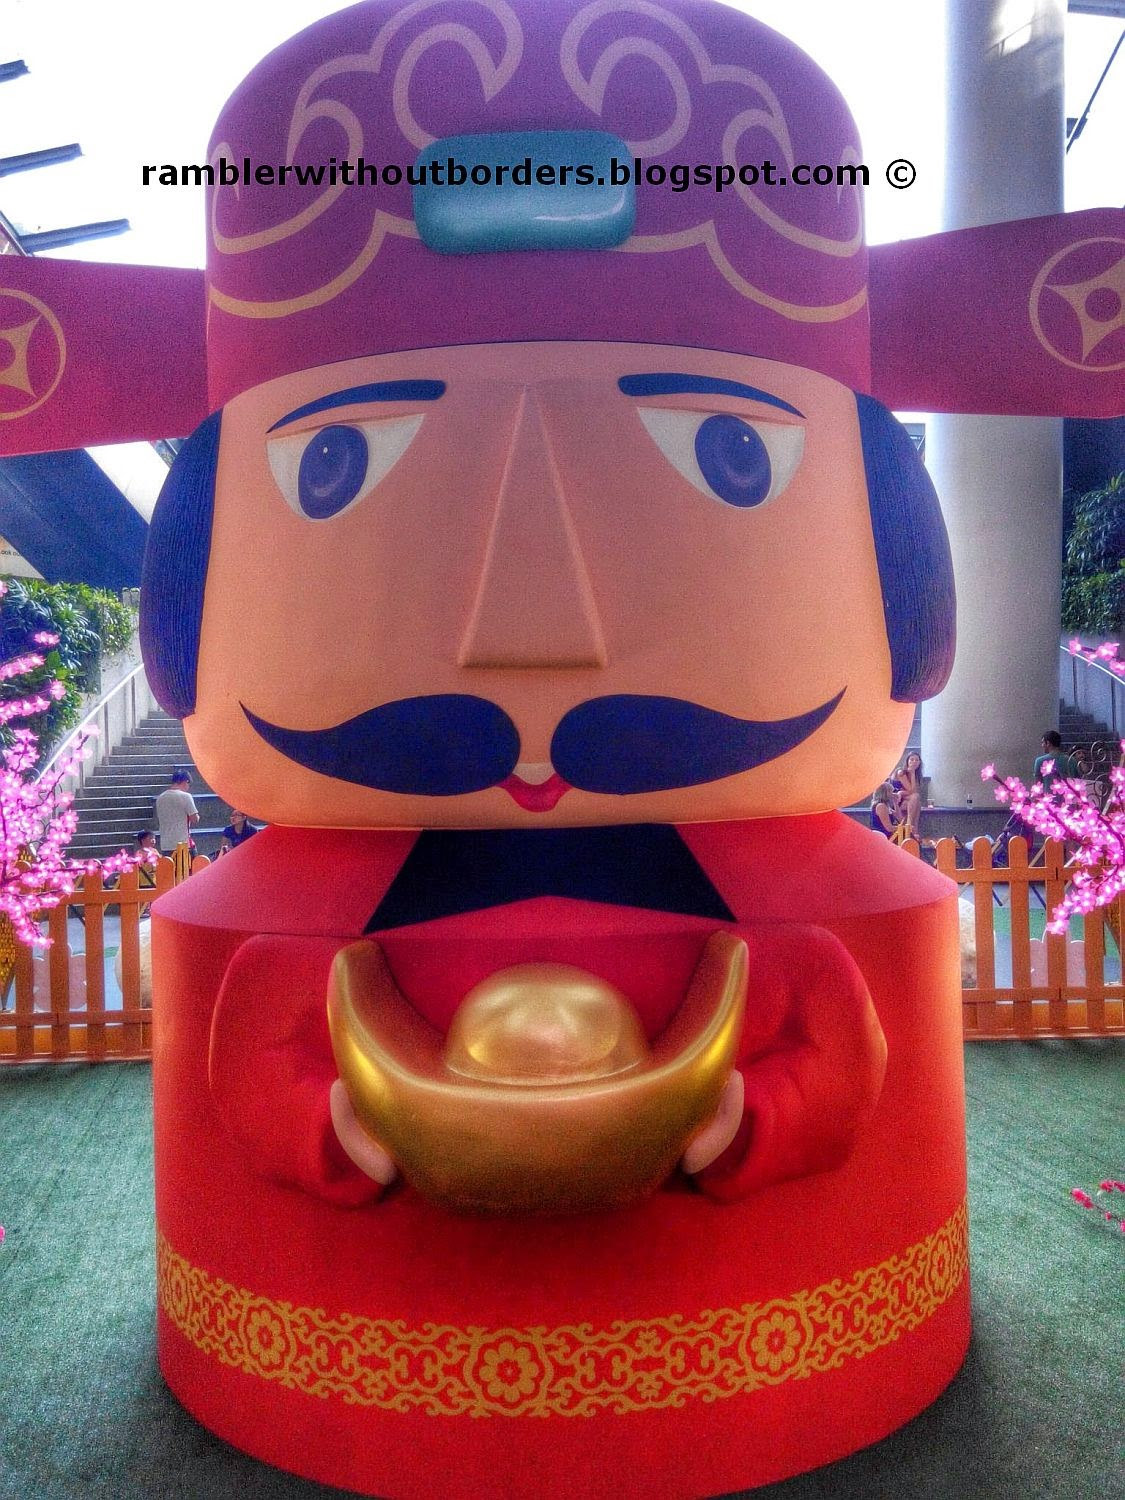 God of Fortune, Star Vista shopping mall, Singapore